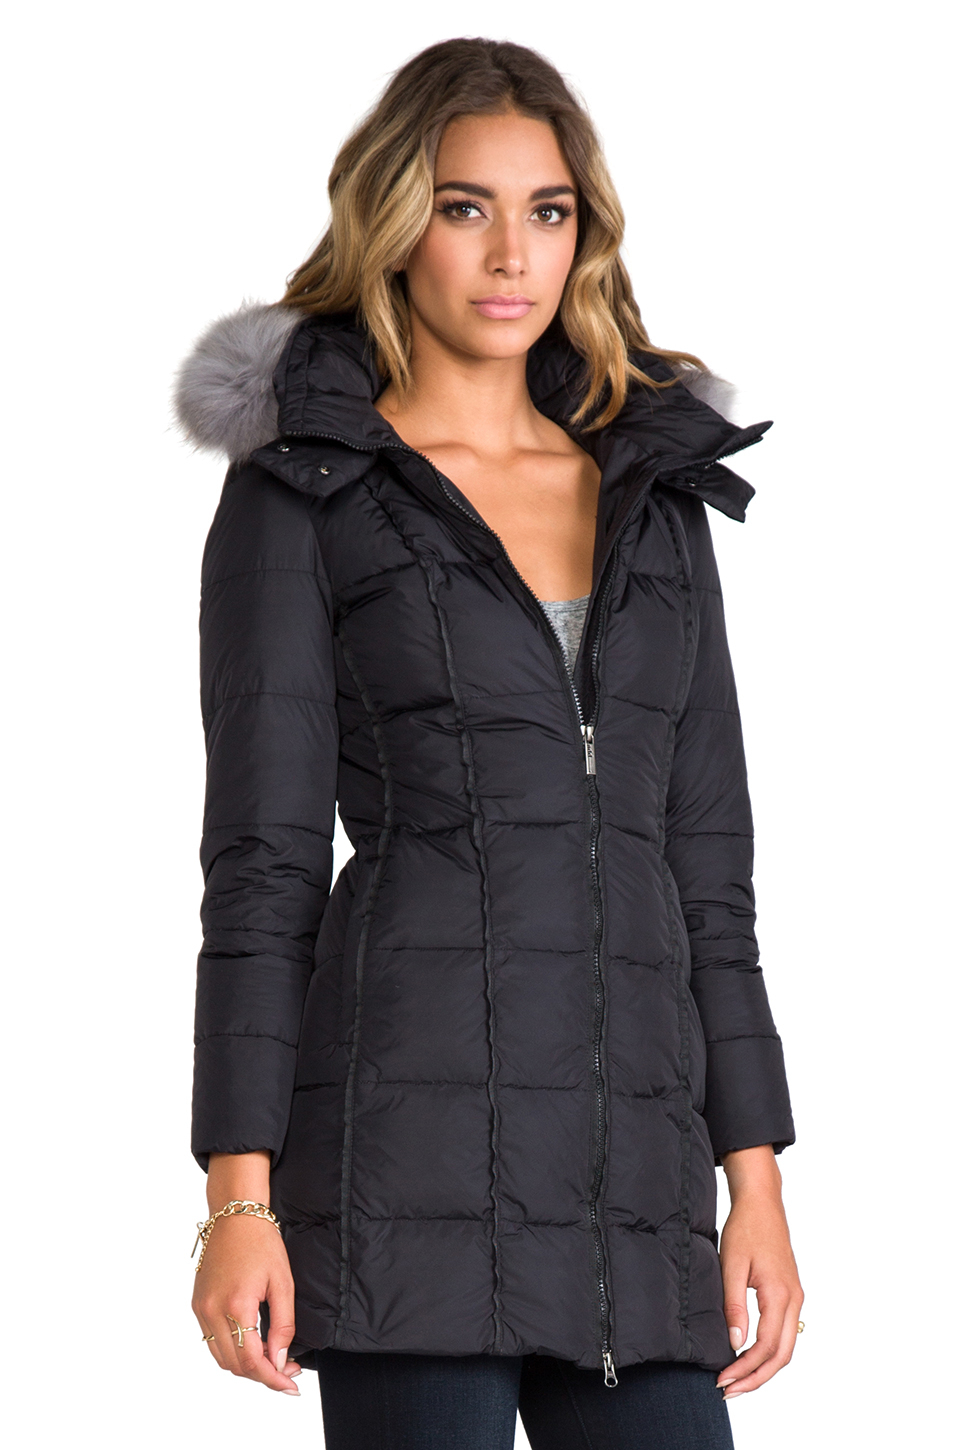 d4e9fcde5abdf Lyst - Add Down Coat with Hood and Fur in Black in Black